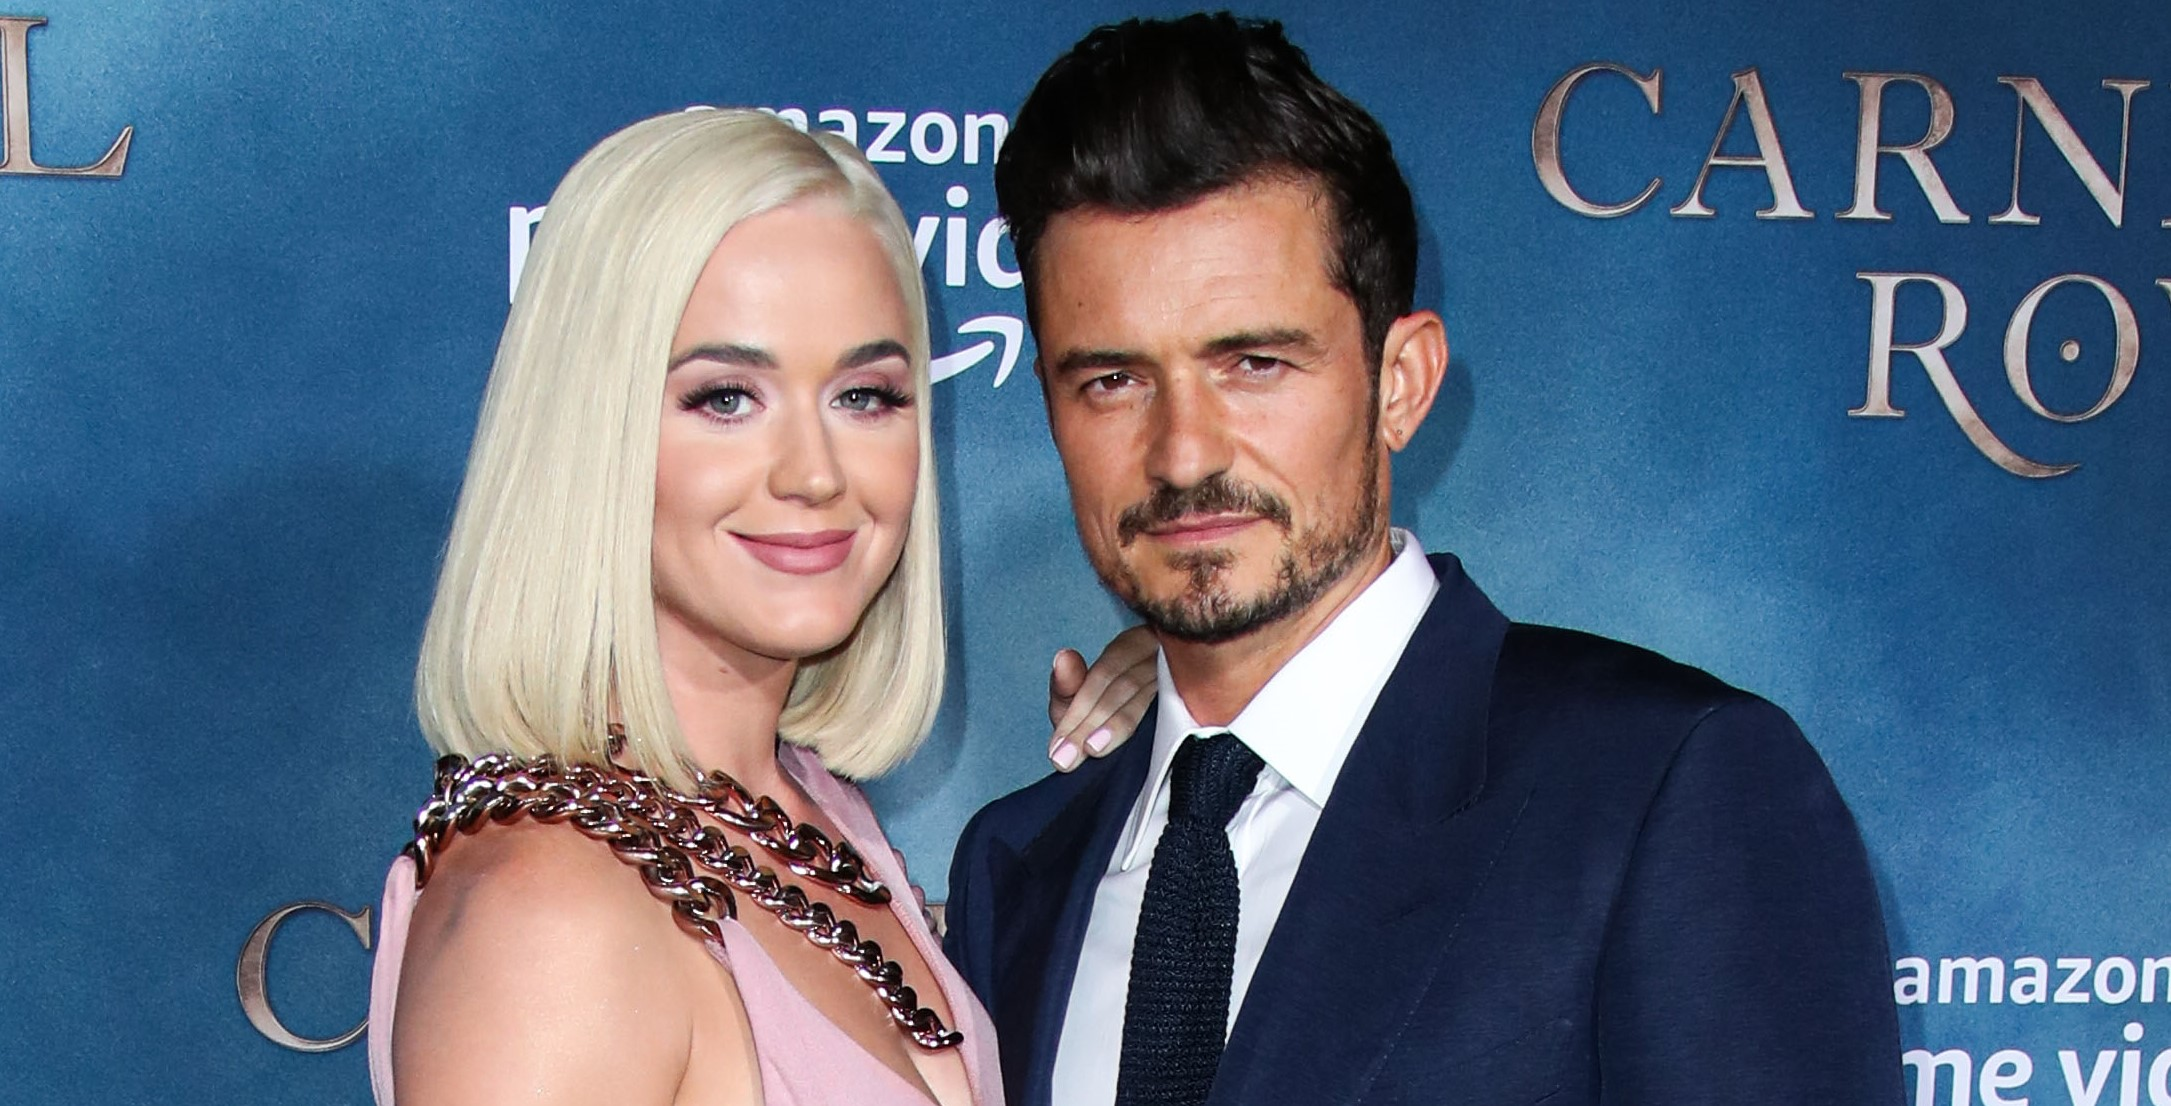 Katy Perry and Orlando Bloom planning Japanese wedding